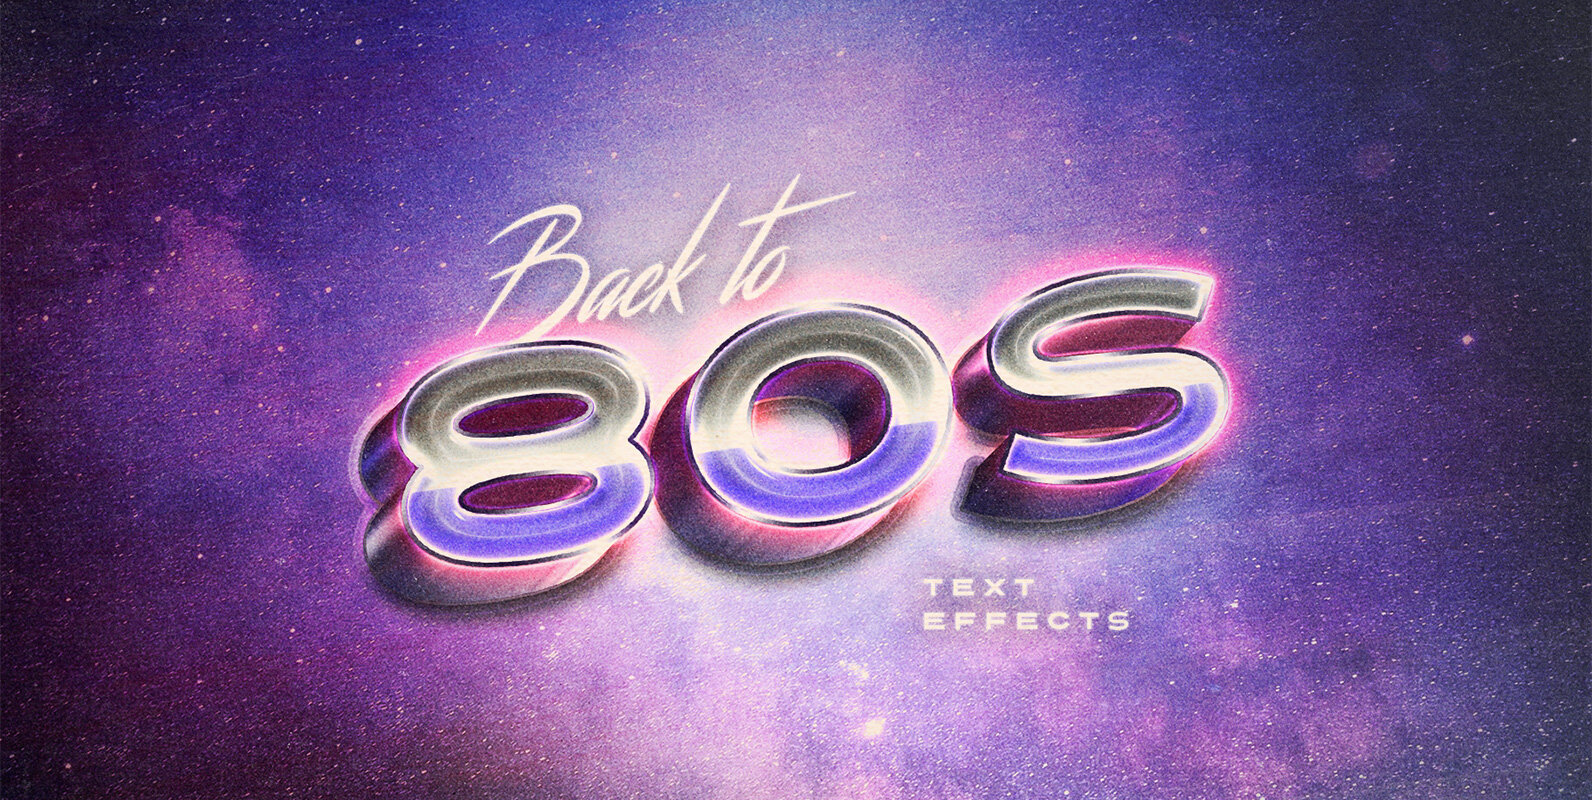 Back to the 80's Retro Text Effects